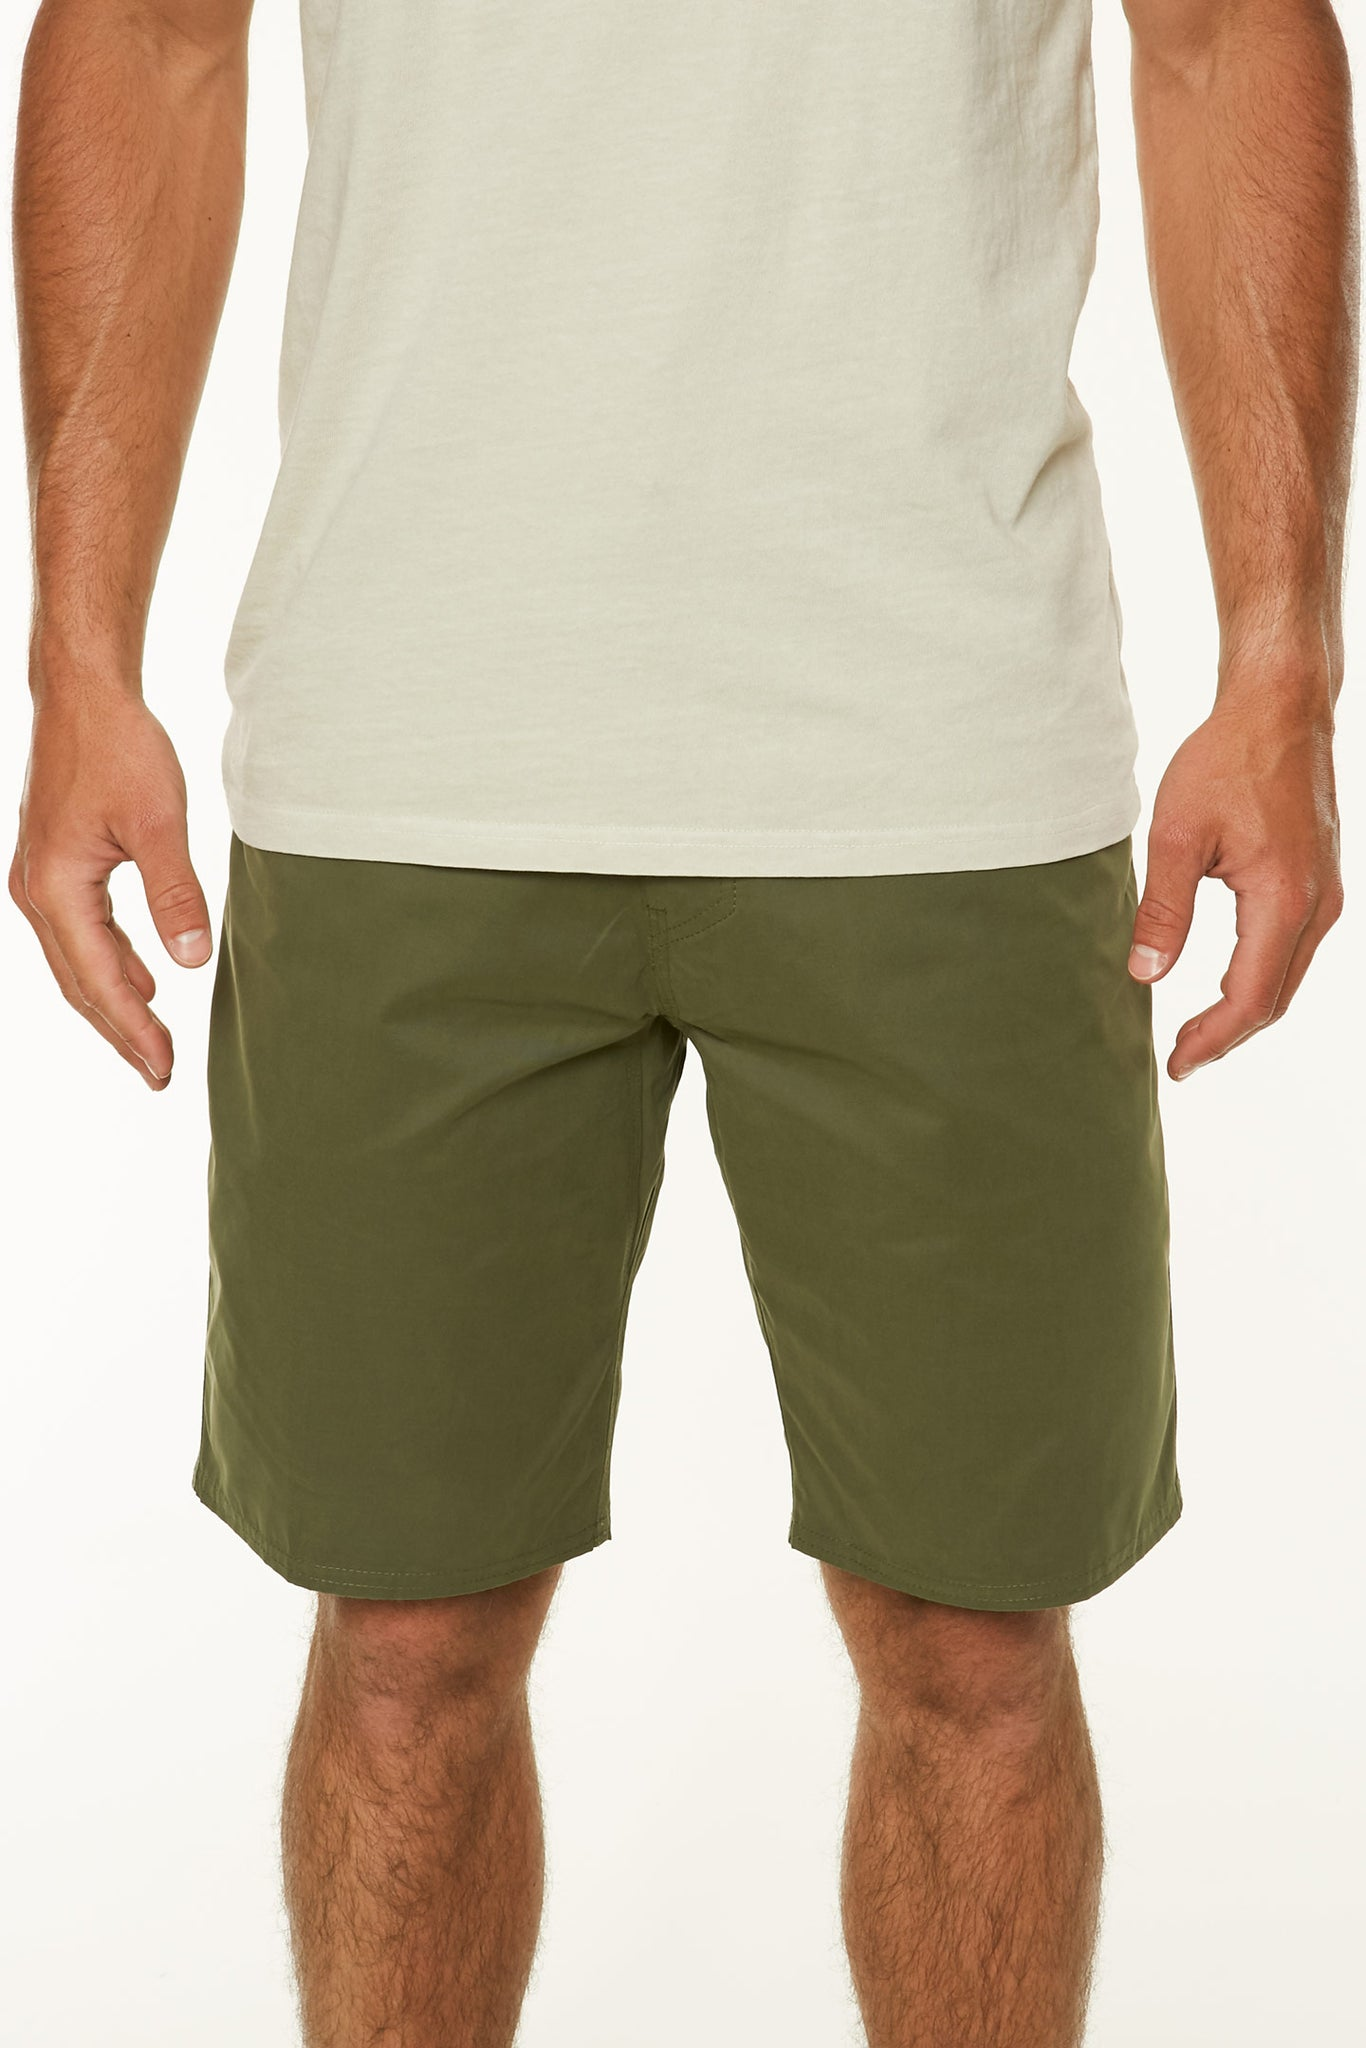 Traveler Transport Hybrid Shorts | O'Neill Clothing USA